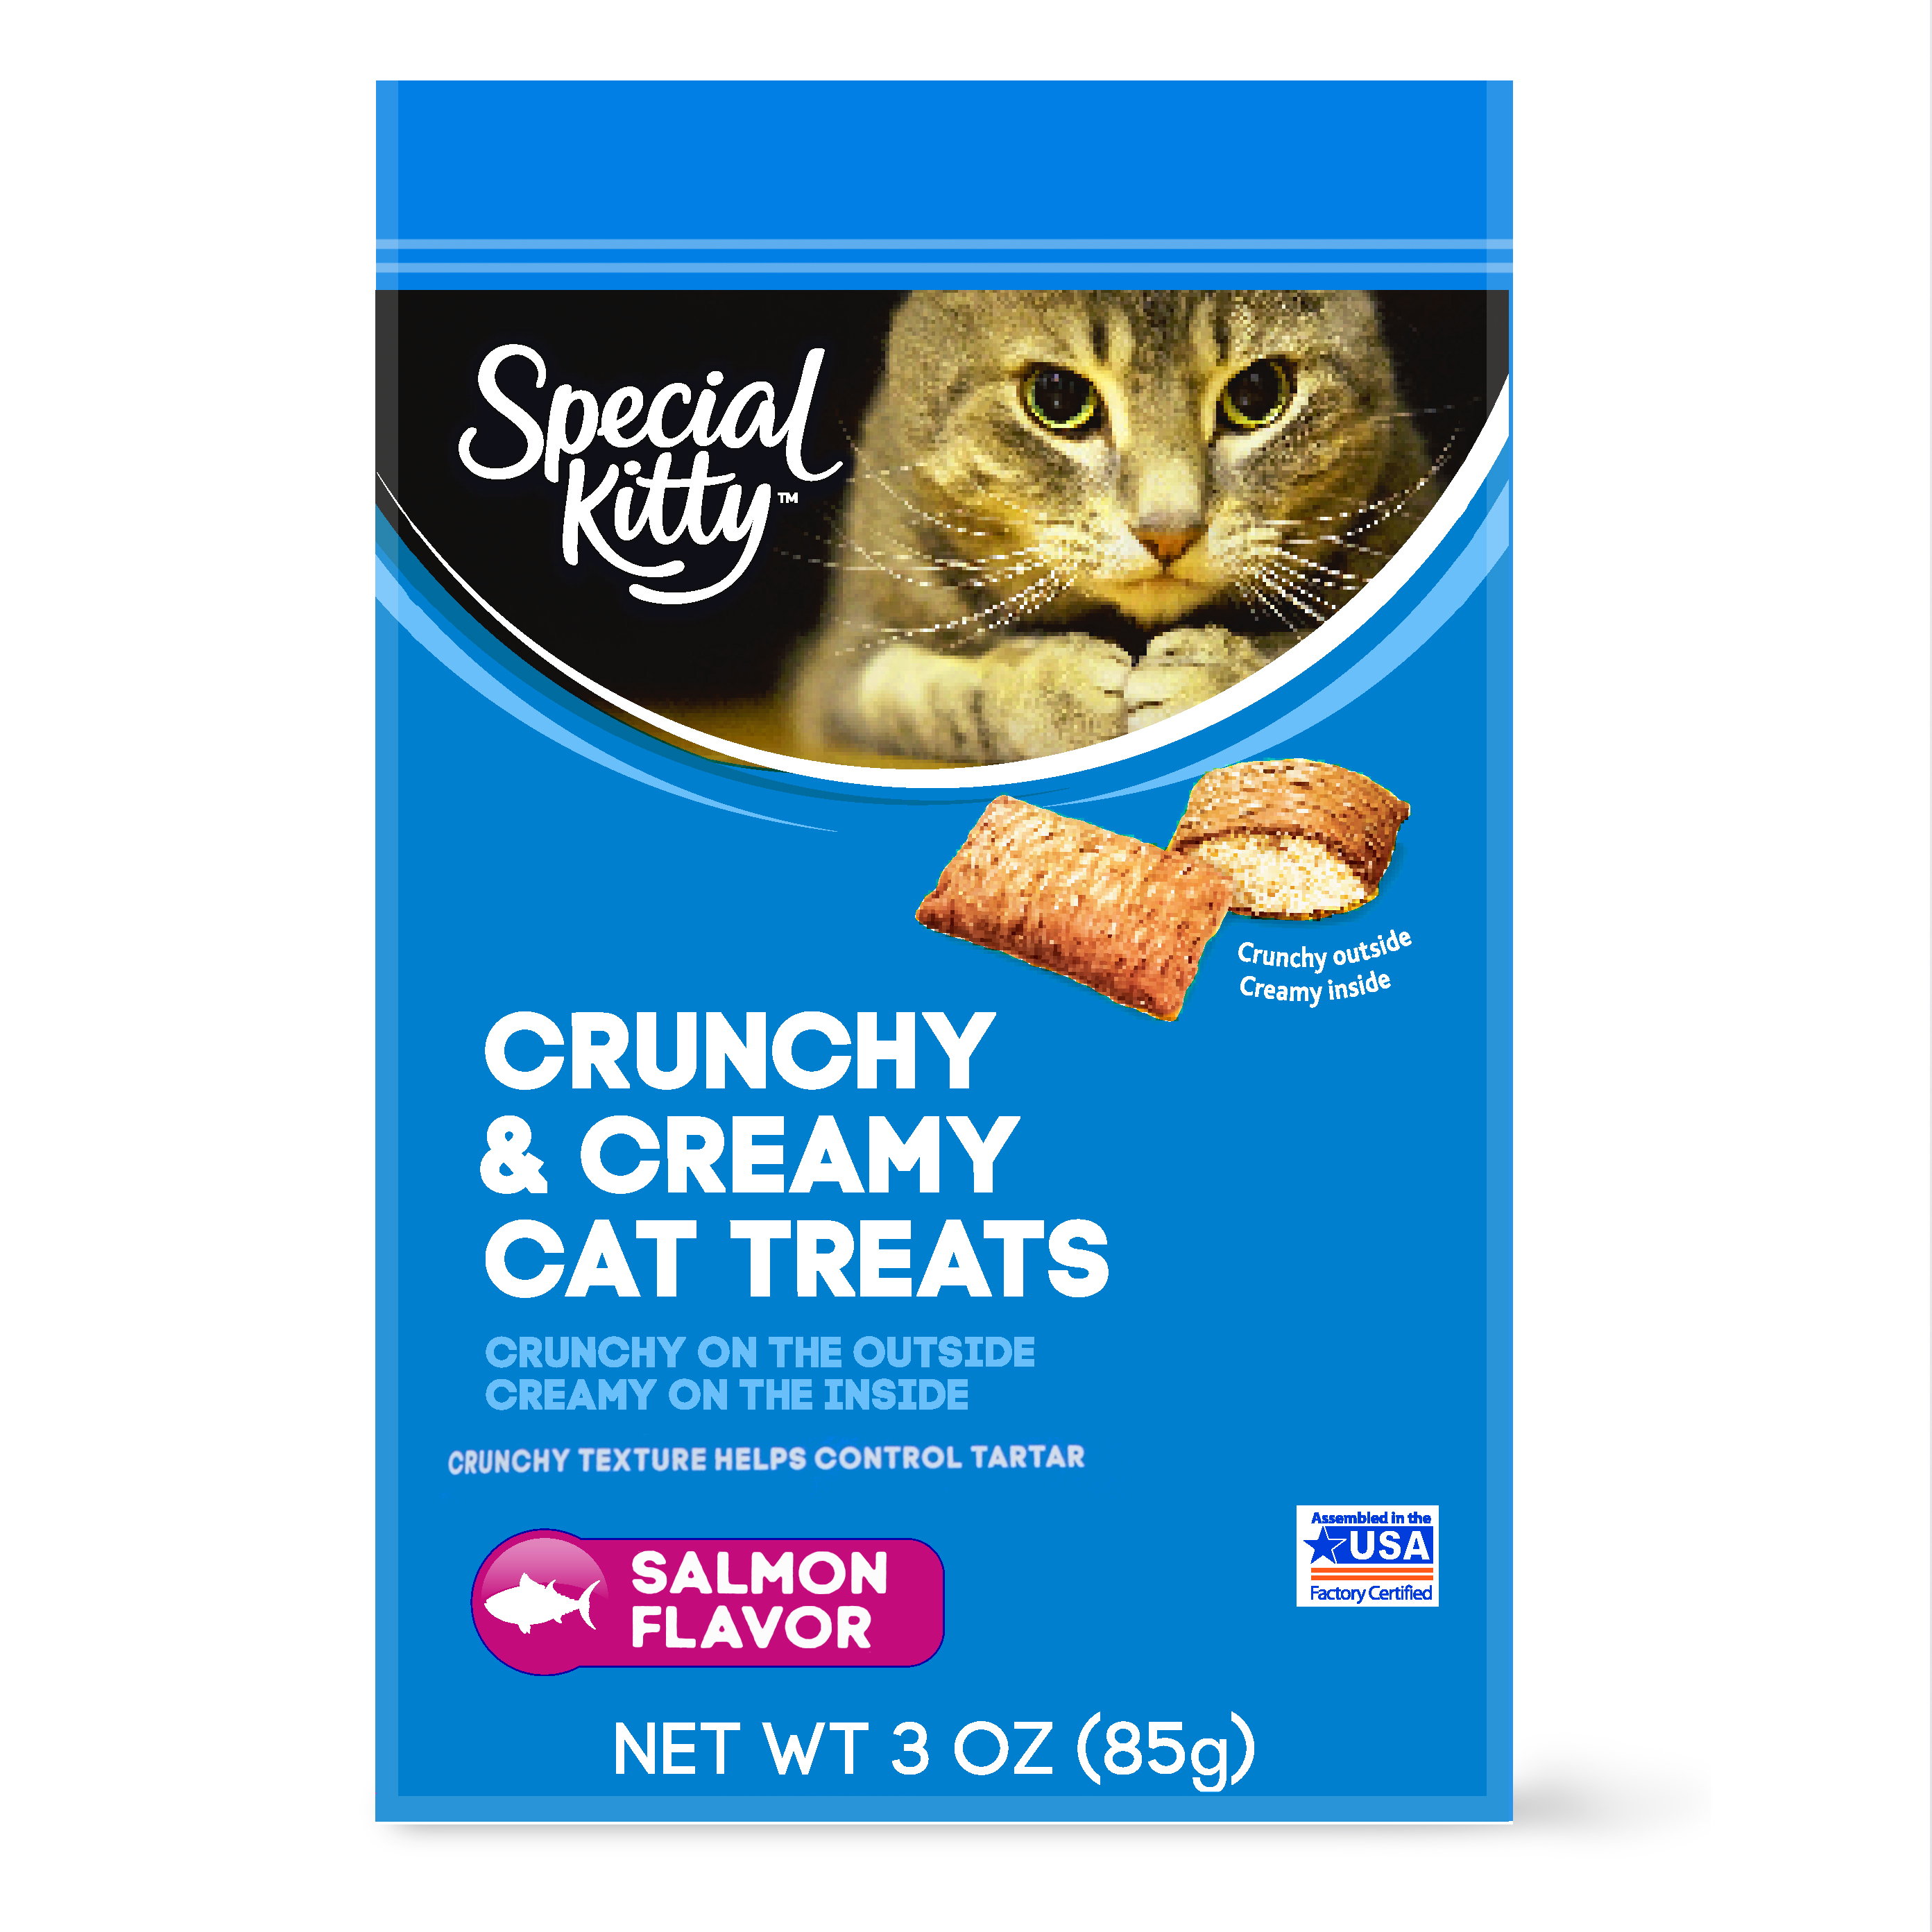 (6 pack) Special Kitty Crunchy & Creamy Cat Treats, Salmon Flavor, 3 oz